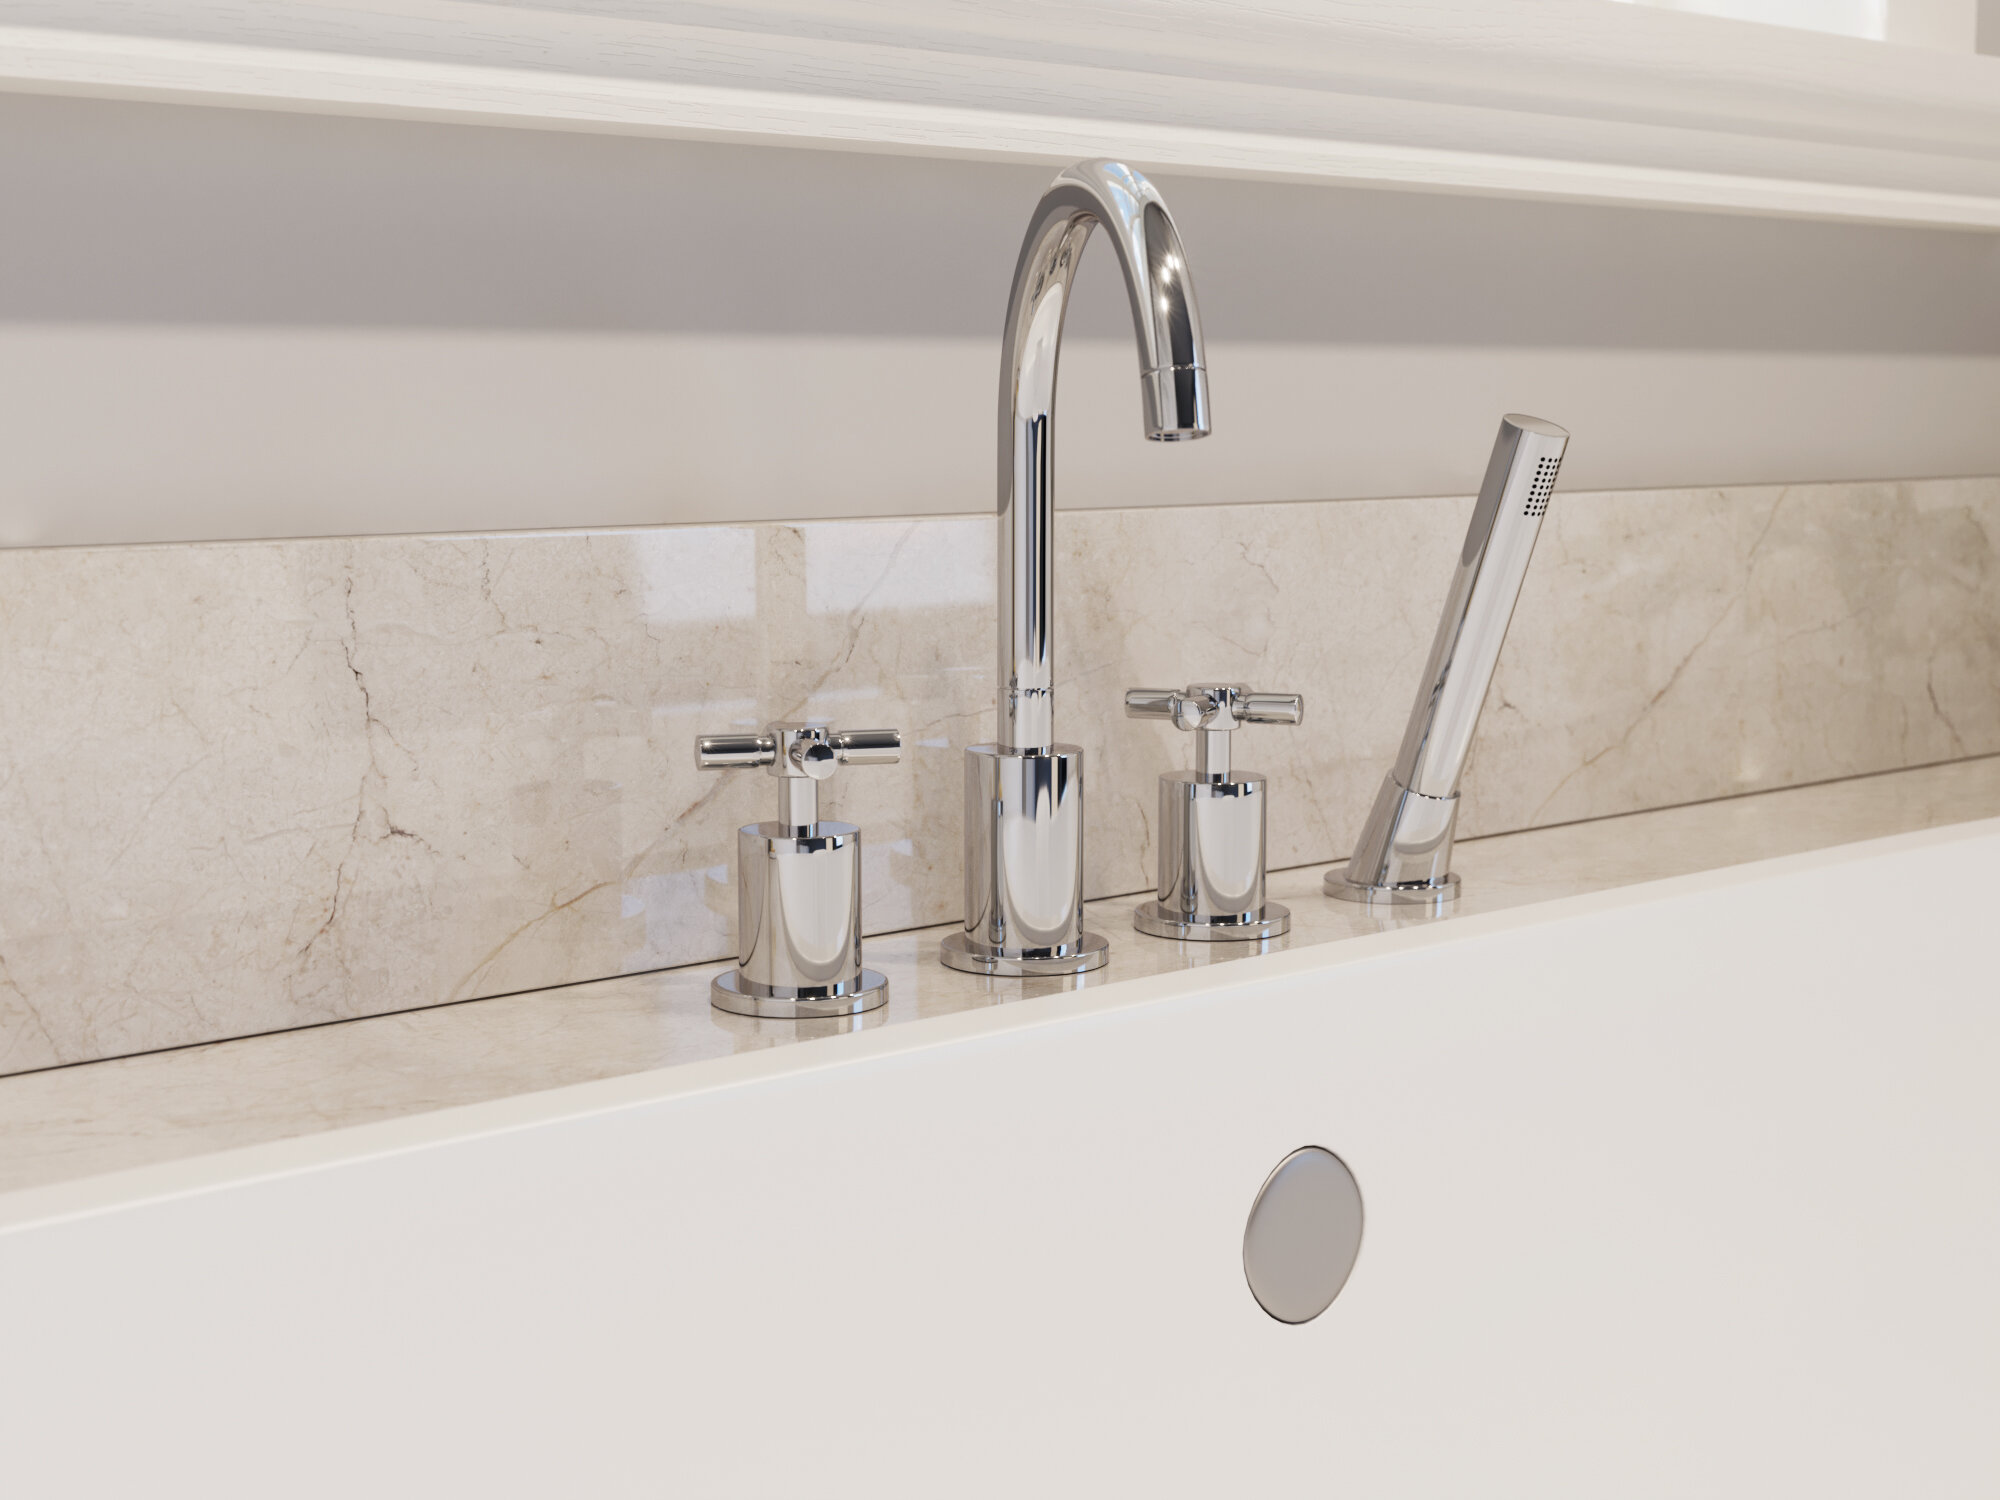 Ancona Prima Double Handle Deck Mount Roman Tub Faucet With Shower